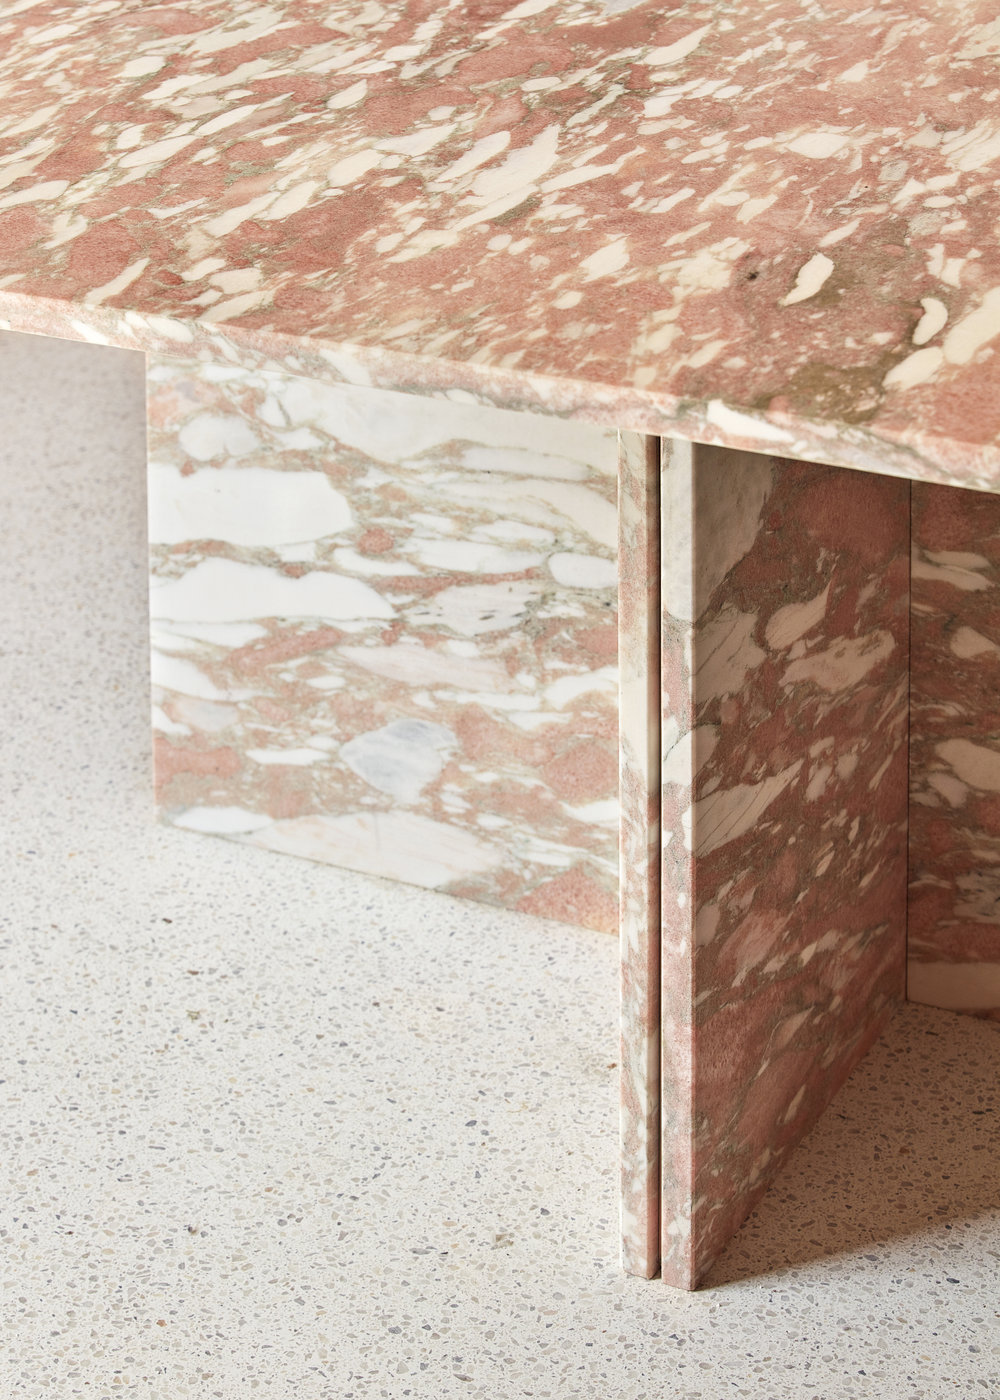 The beautiful Norwegian rose marble display counter against the white terrazzo.